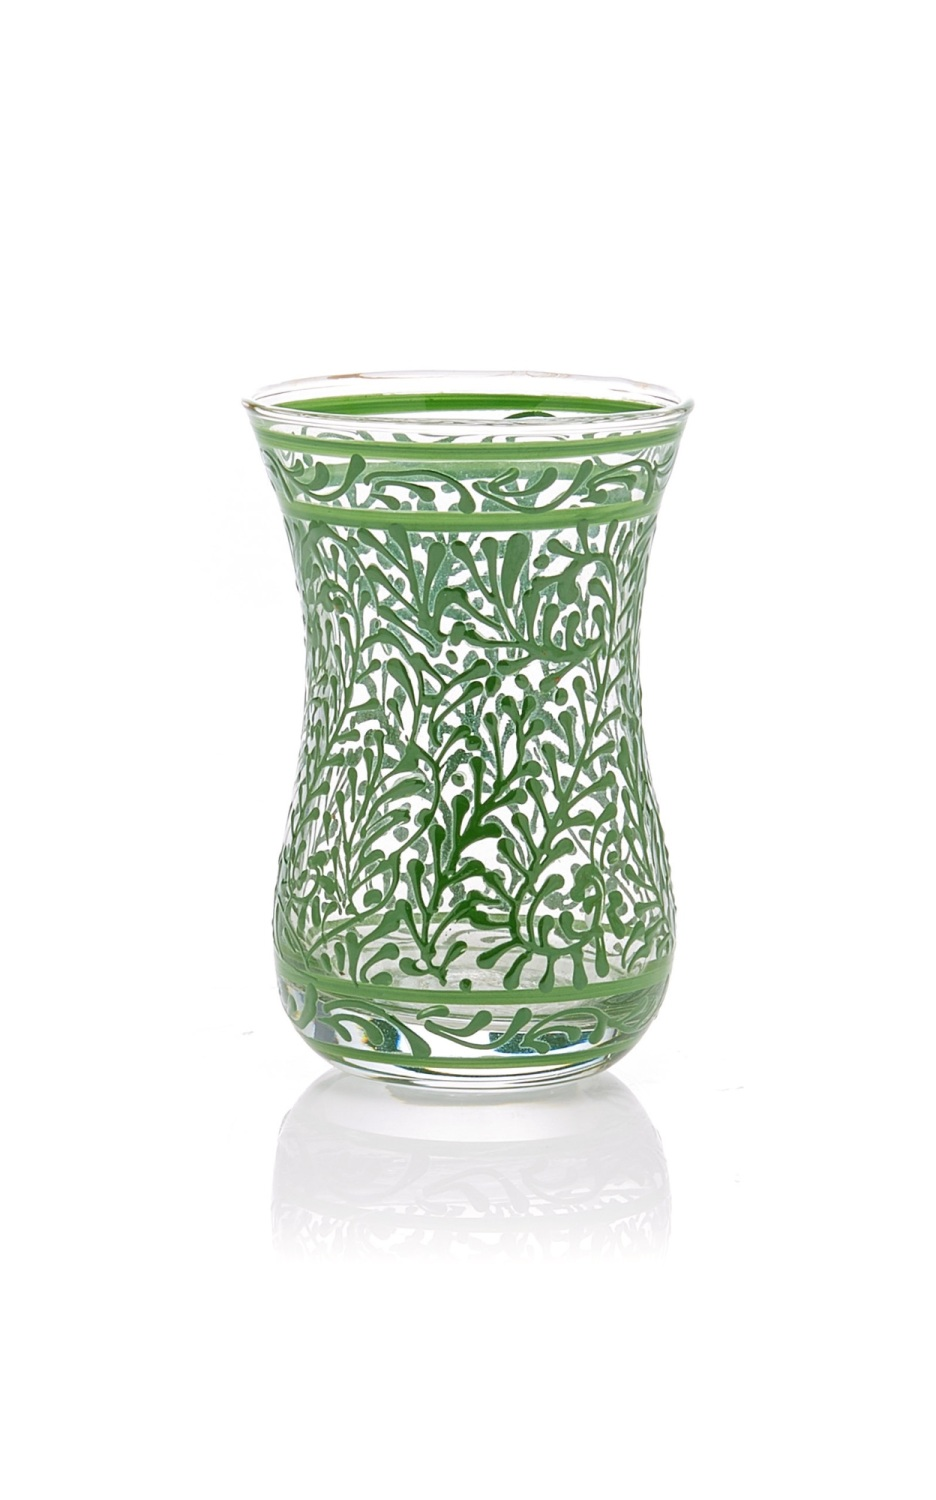 Summer 18: 87 large_cabana-green-m-o-exclusive-oriente-tea-glass